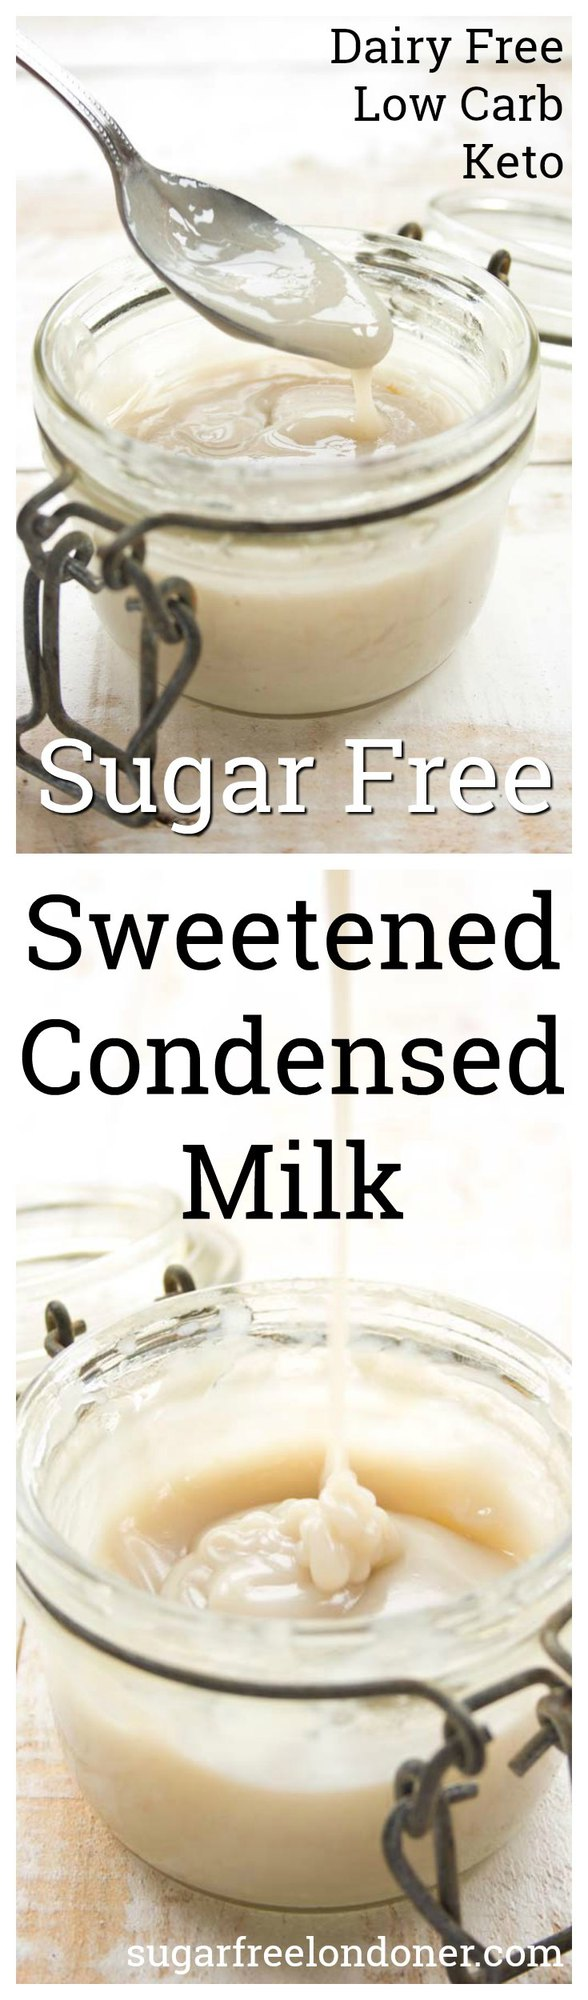 A simple homemade sugar free condensed milk that works wonders in low carb and Keto dessert recipes. Only 3 ingredients and 1/10 of the carbs in regular sweetened condensed milk! #condensedmilk #dessert #sugarfree #diabetic #lowcarb #keto